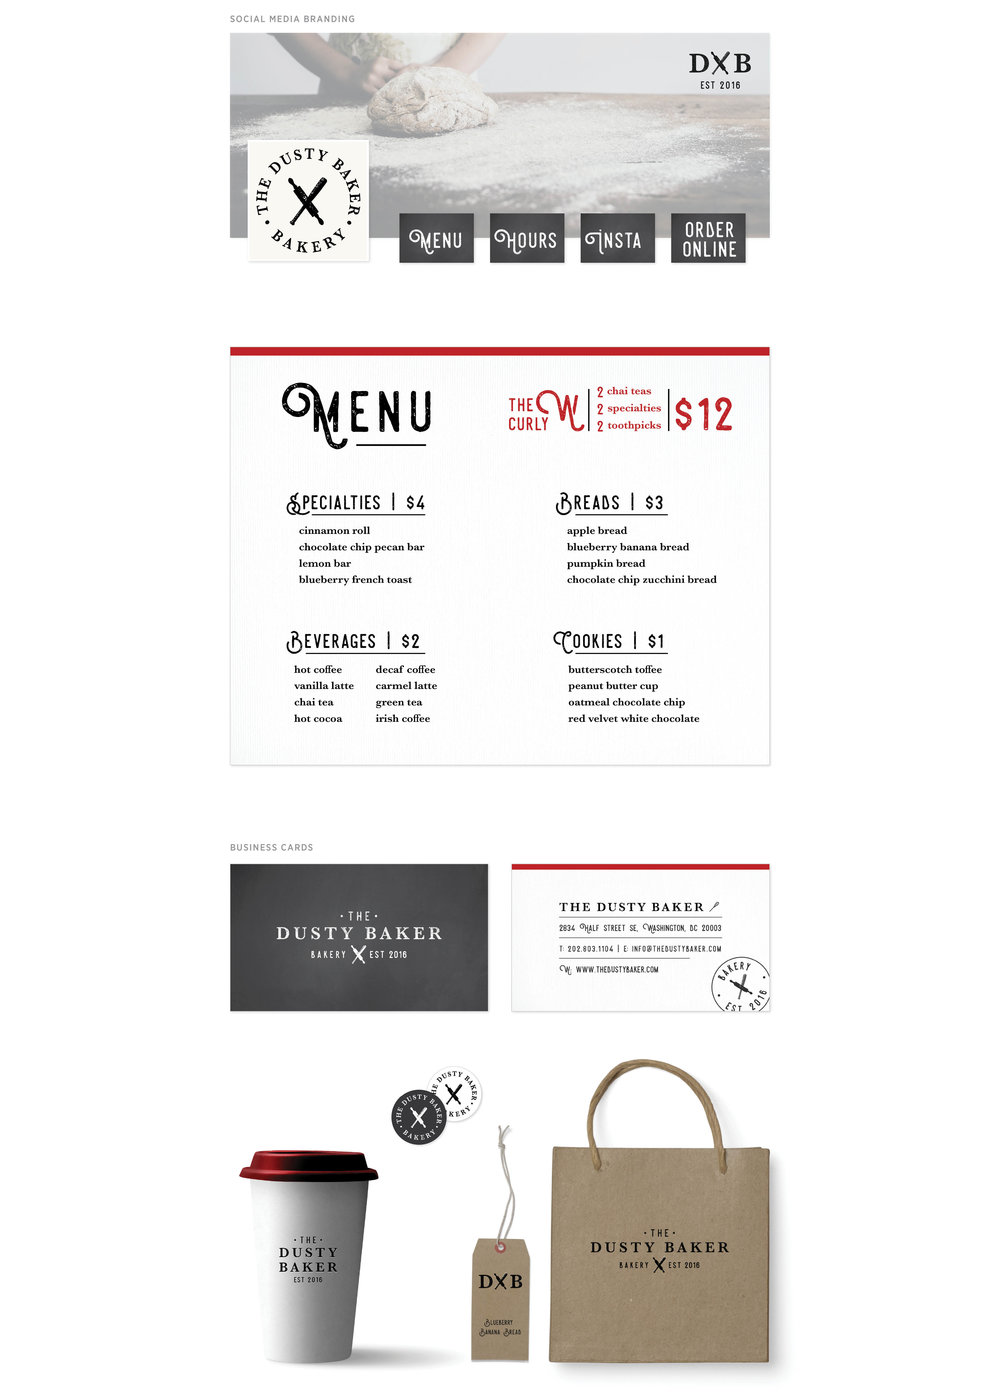 The Dusty Baker Branding | By Casi Long Design | casilong.com 4.jpg